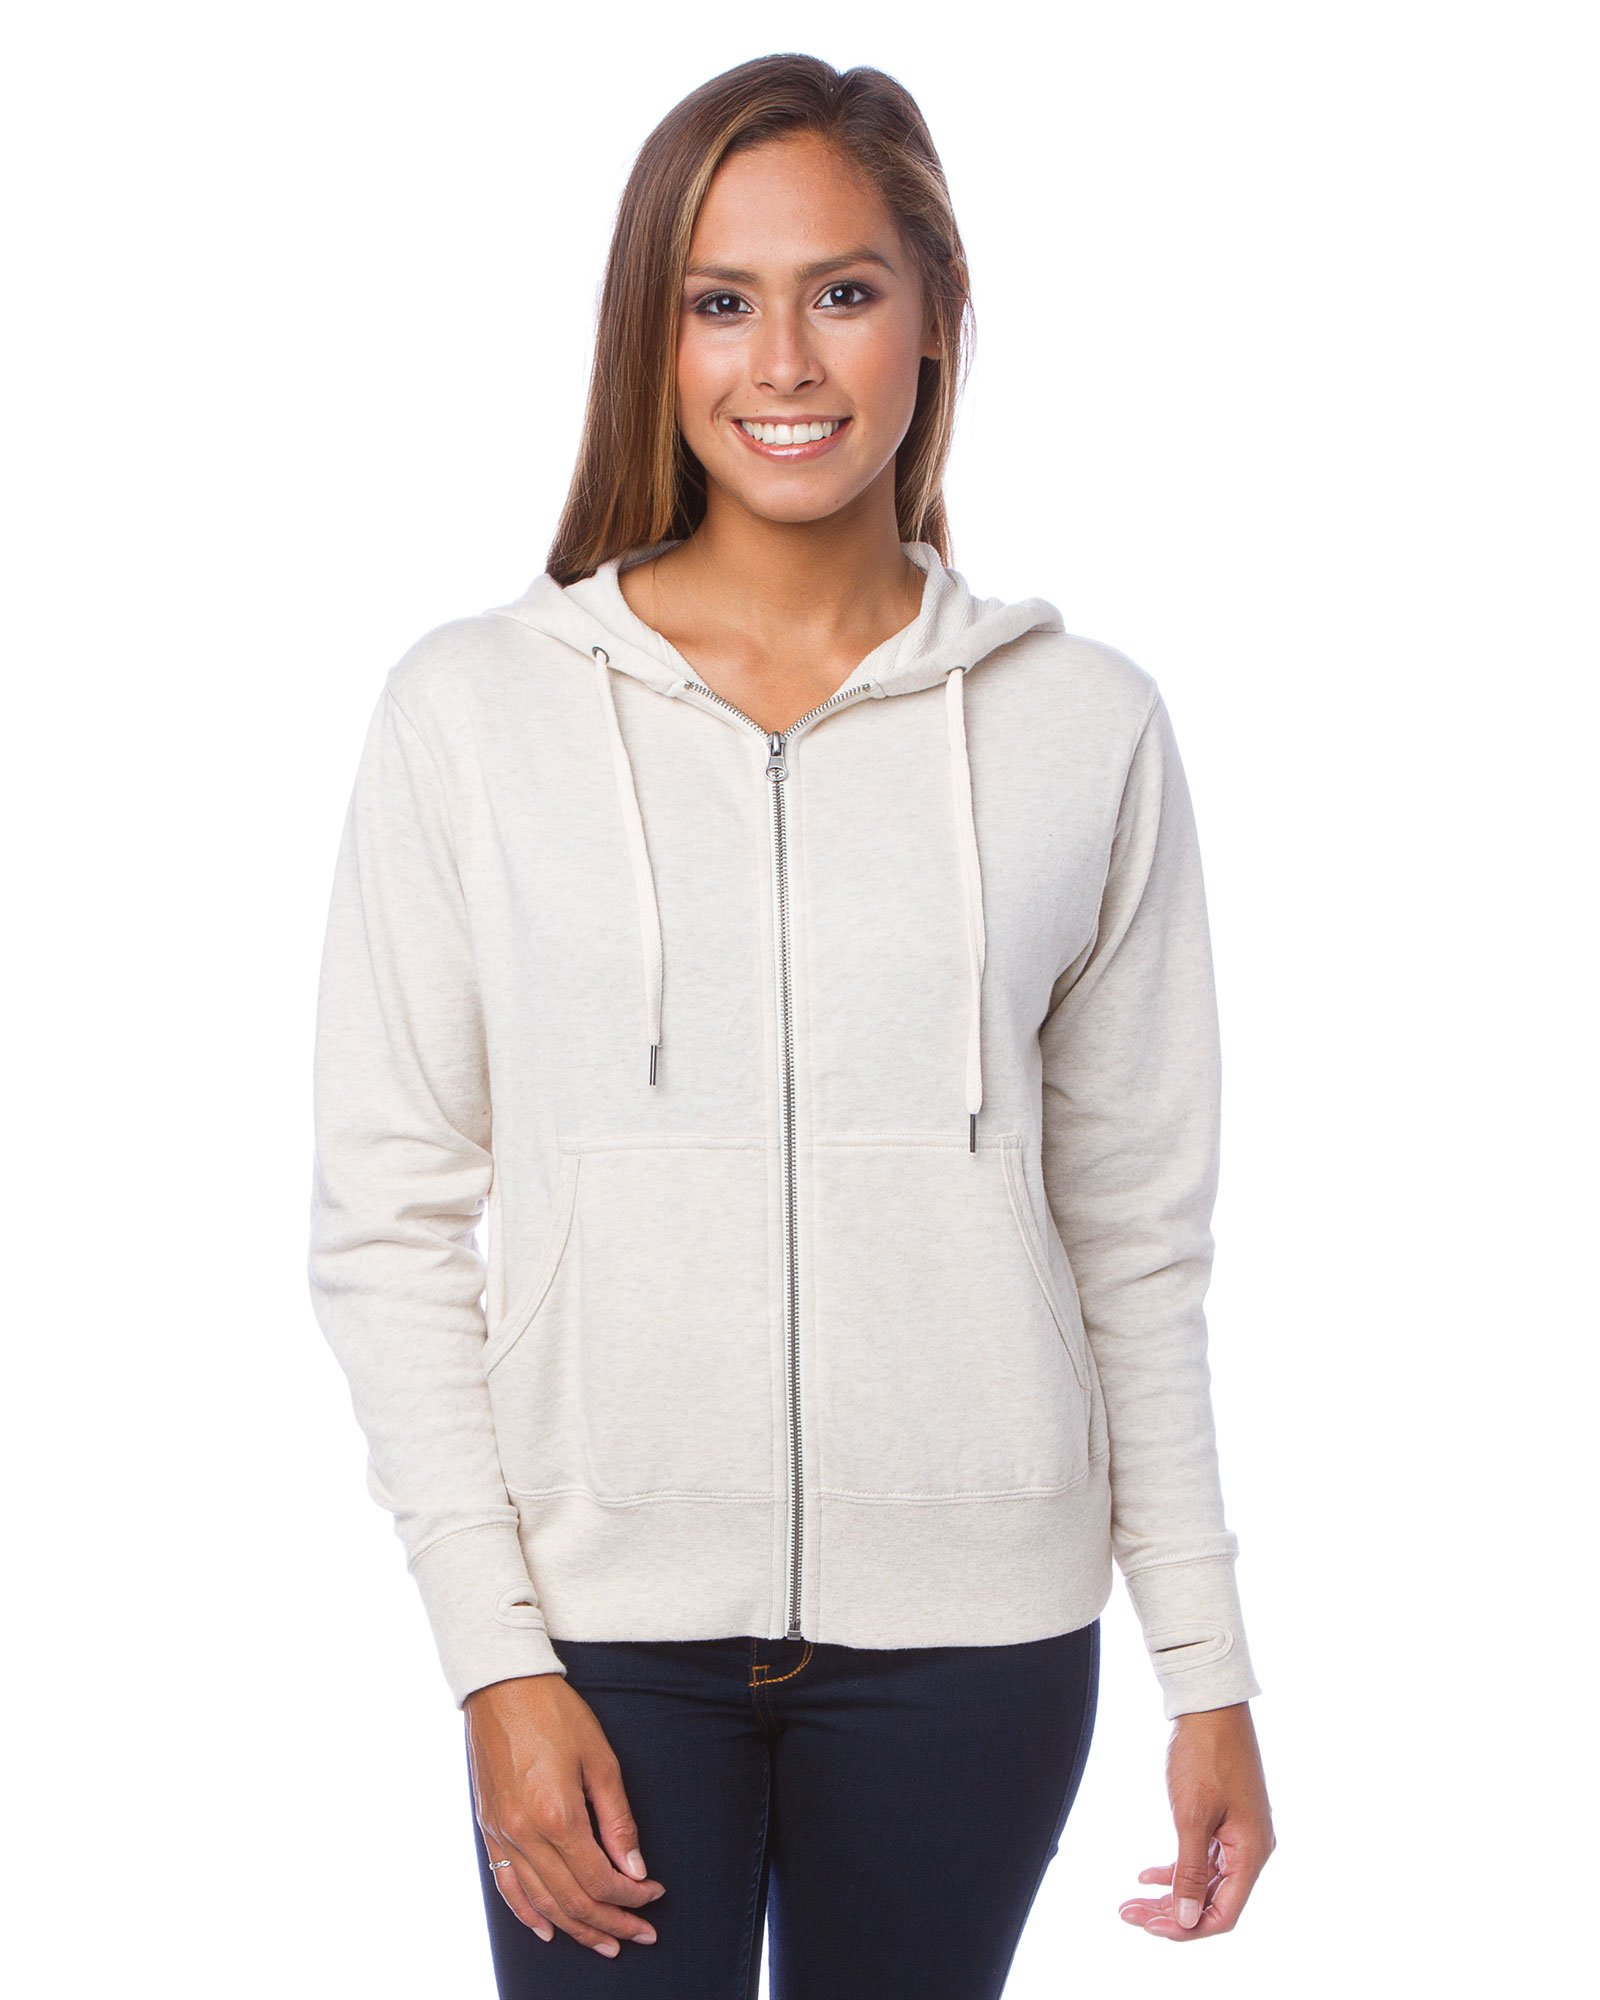 Global Blank Slim Fit French Terry Lightweight Zip Up Hoodie for Men and Women XS Off White